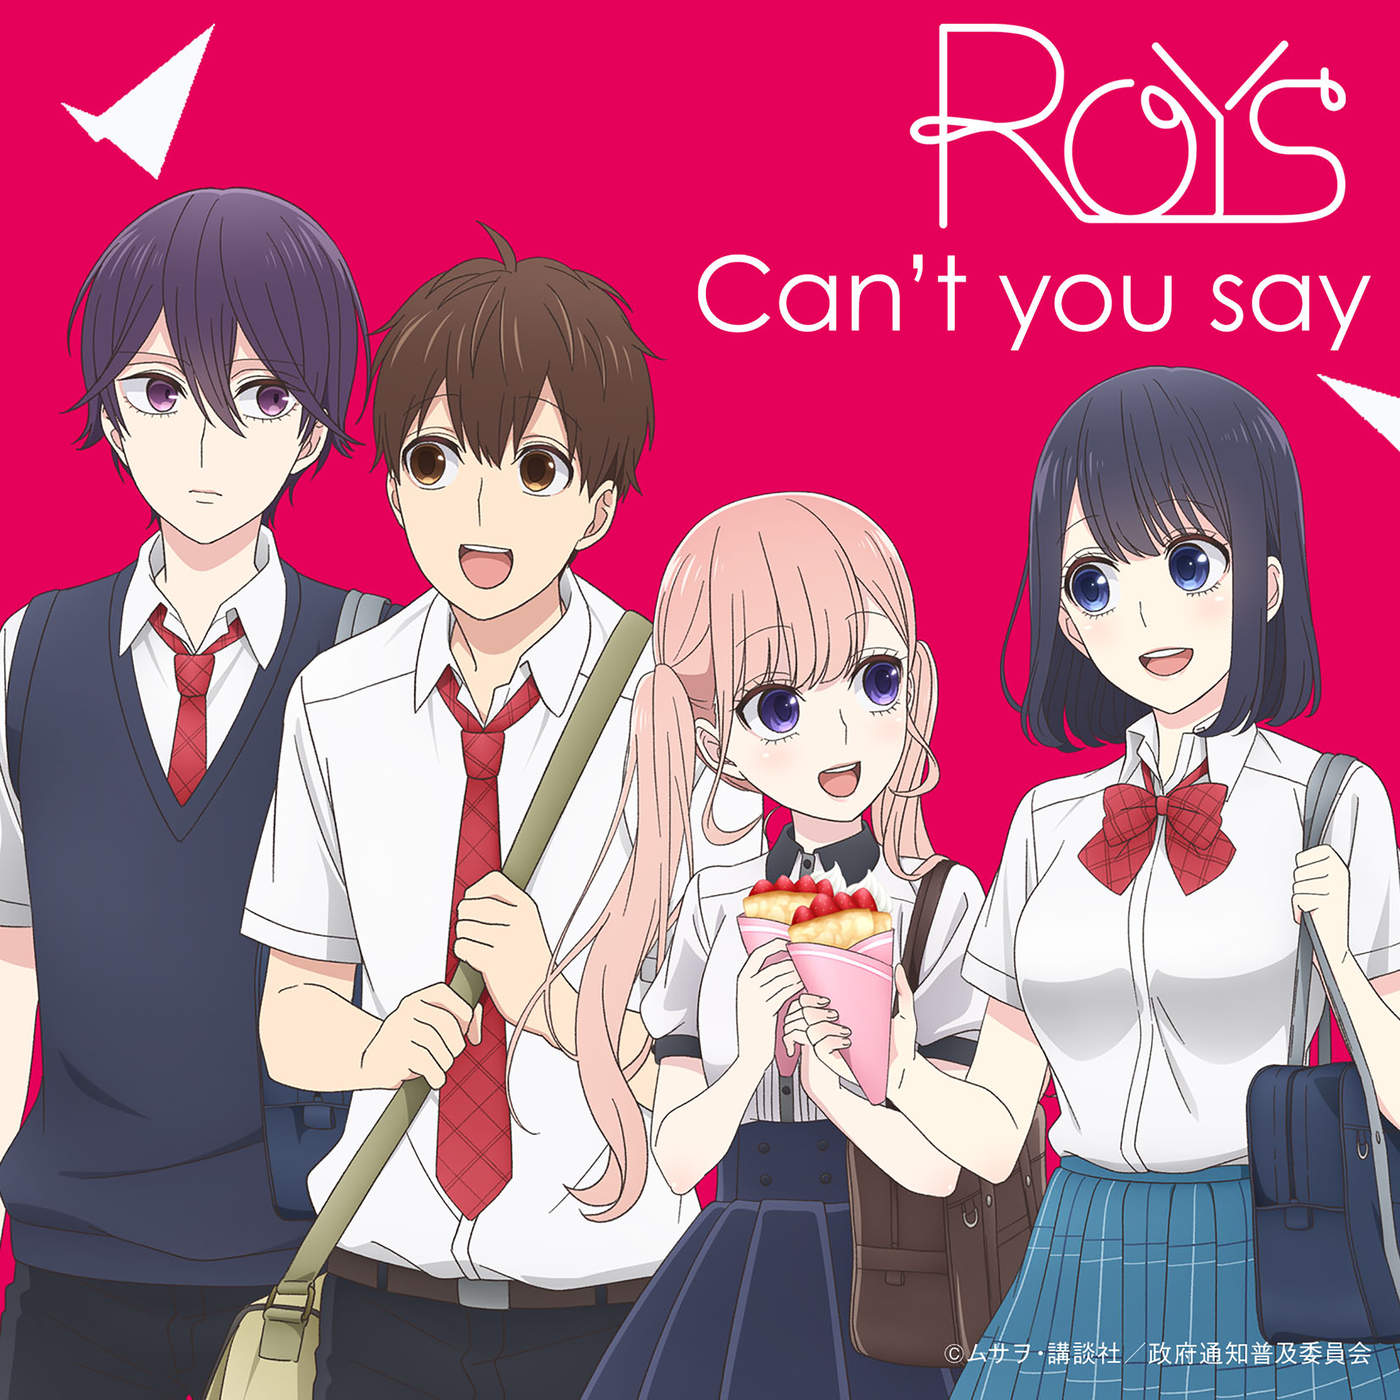 Roys – Can't you say